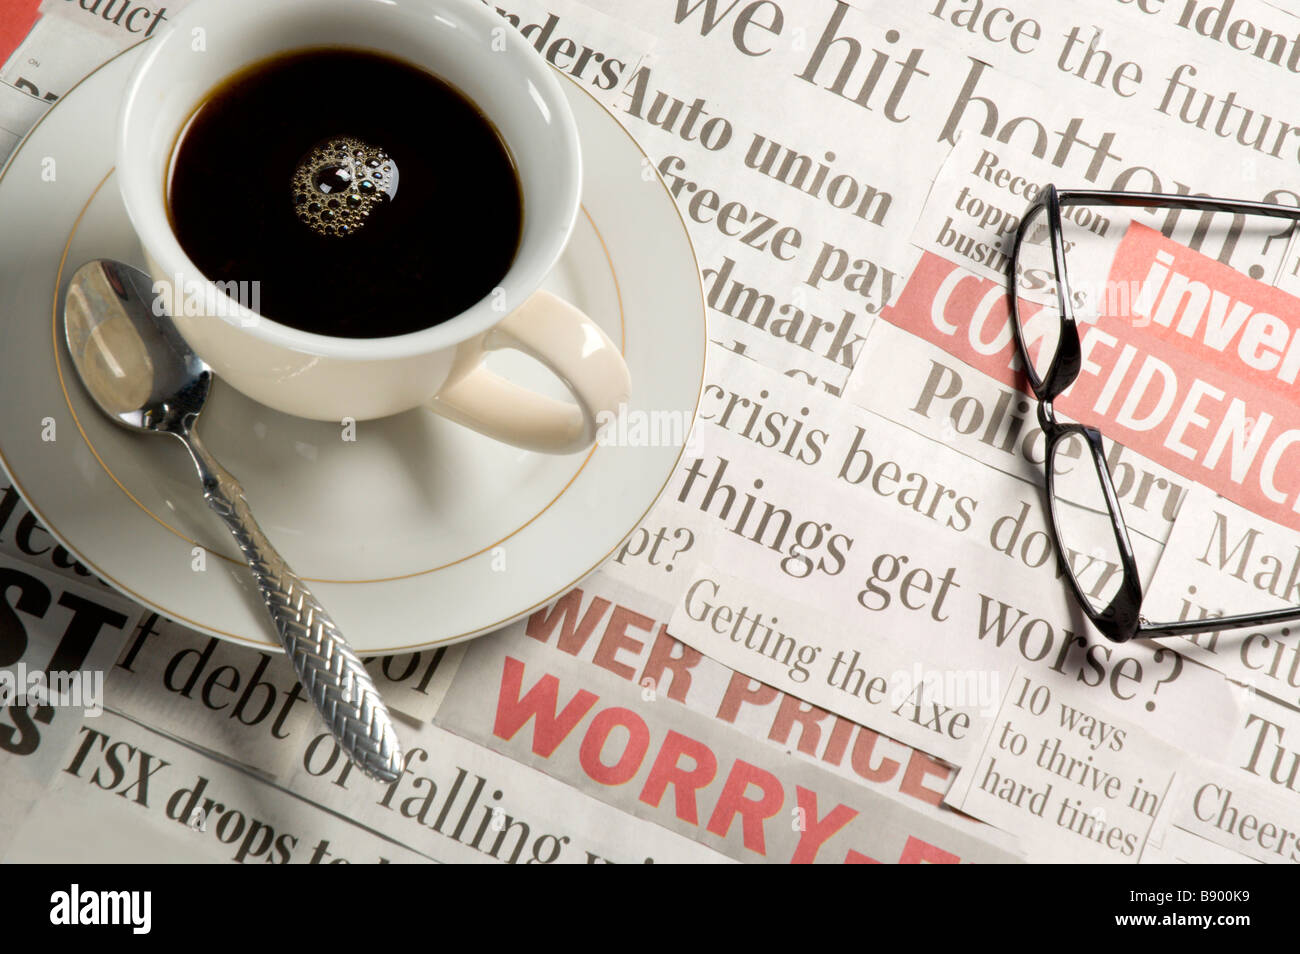 Coffee breakfast over top of bad news headlines in the newspaper - Stock Image